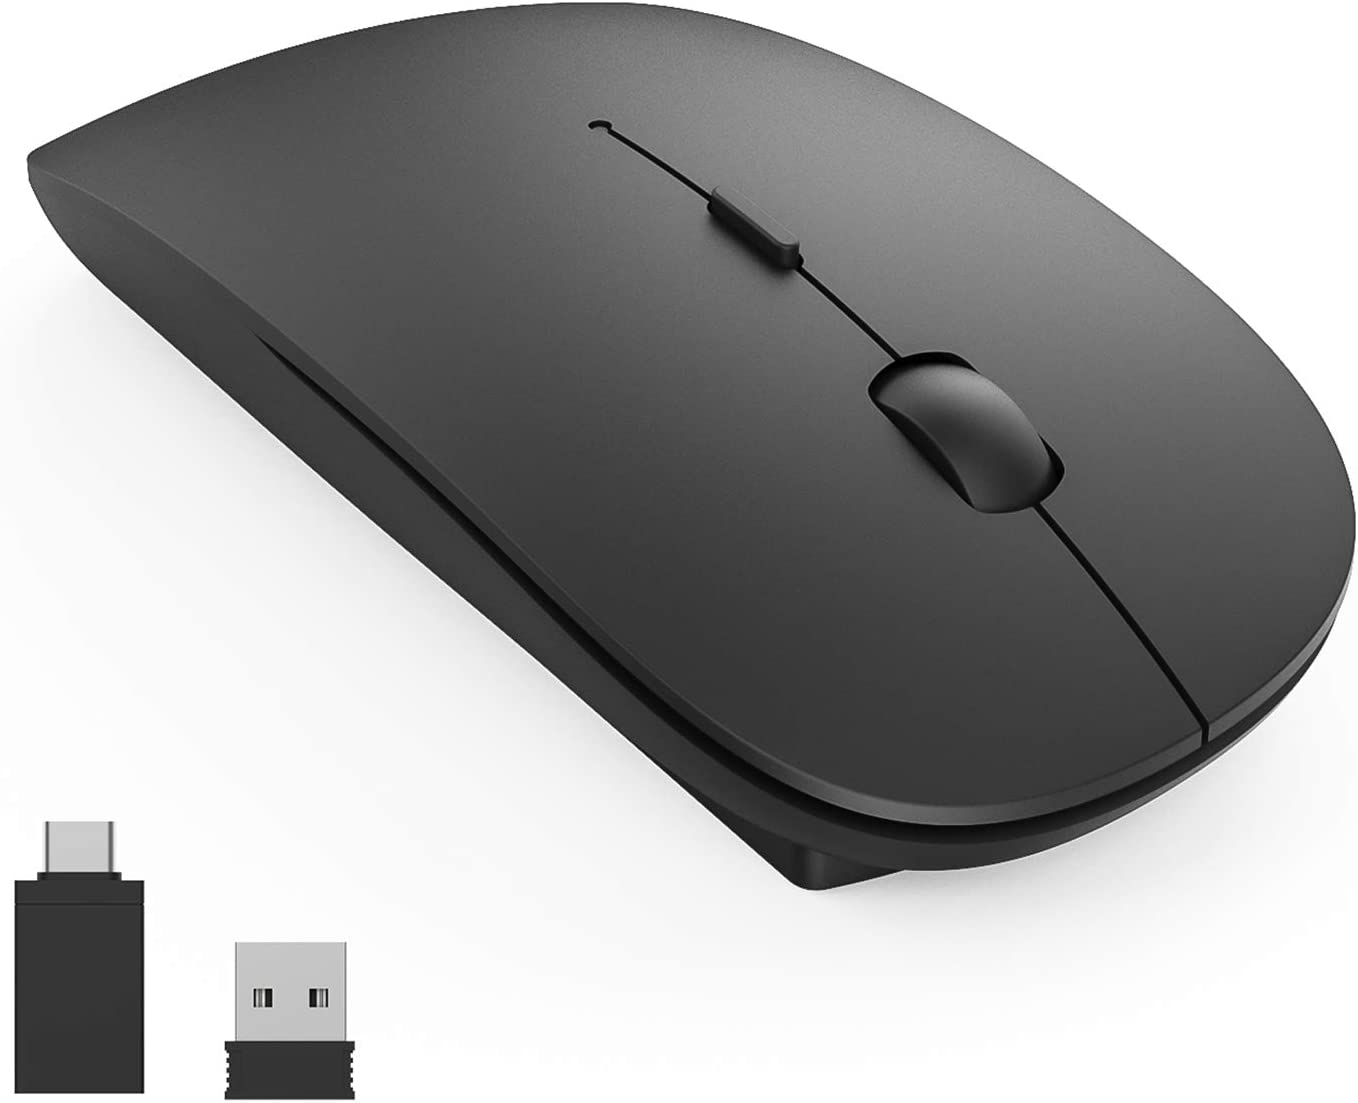 Wireless Mouse,2.4G Slim Noiseless Mouse with USB and Type-C Receiver,1600DPI Portable Cordless Computer Mouse for PC//Laptop//Mac//Desktop Matte Black